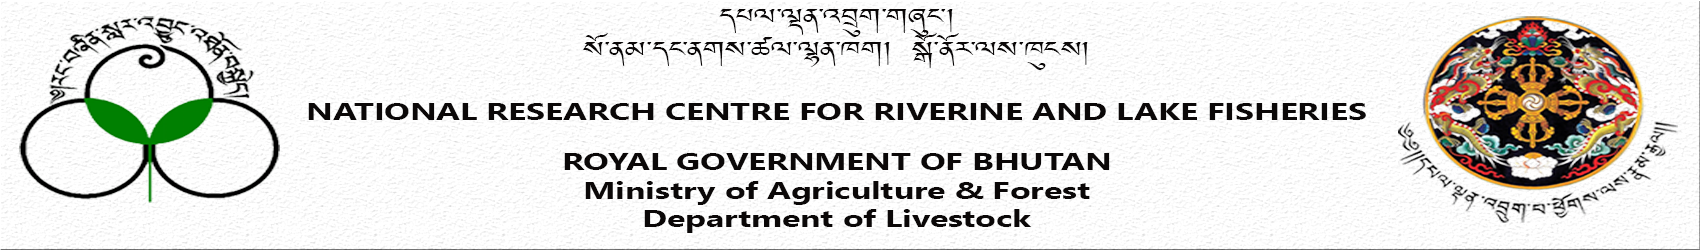 National Research Centre For Riverine And Lake Fisheries